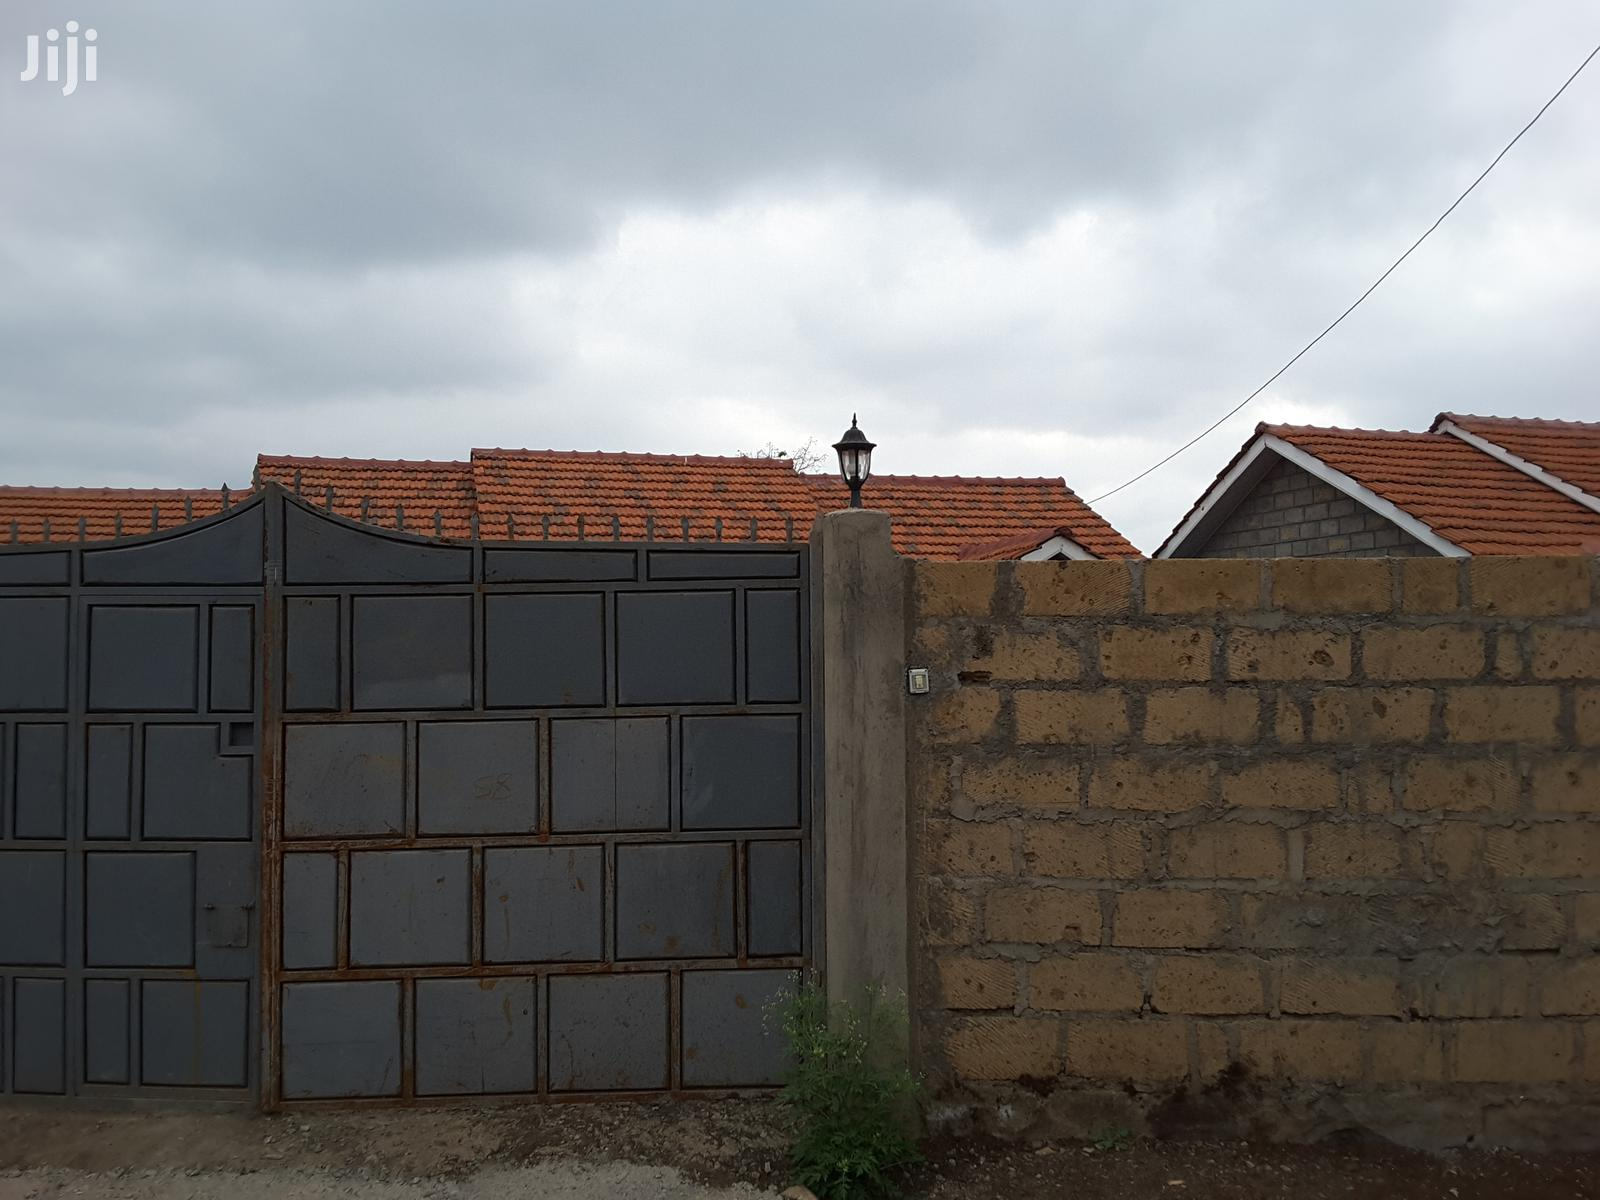 Lovely 3 BR Houses In Ongata Rongai | Houses & Apartments For Sale for sale in Ongata Rongai, Kajiado, Kenya